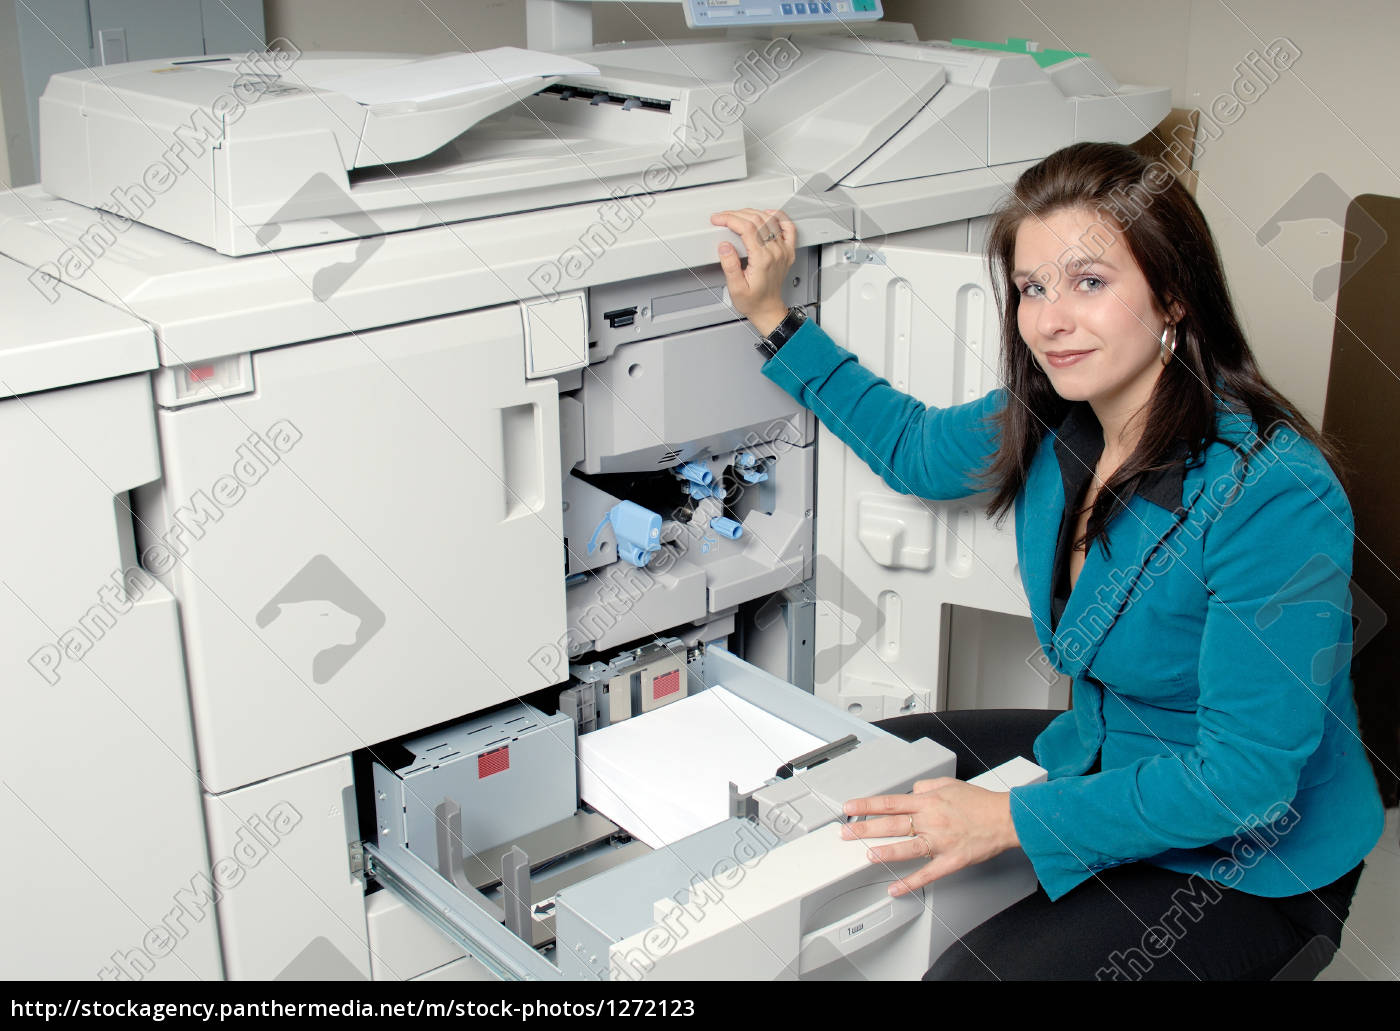 photocopy, machine, and, woman - 1272123